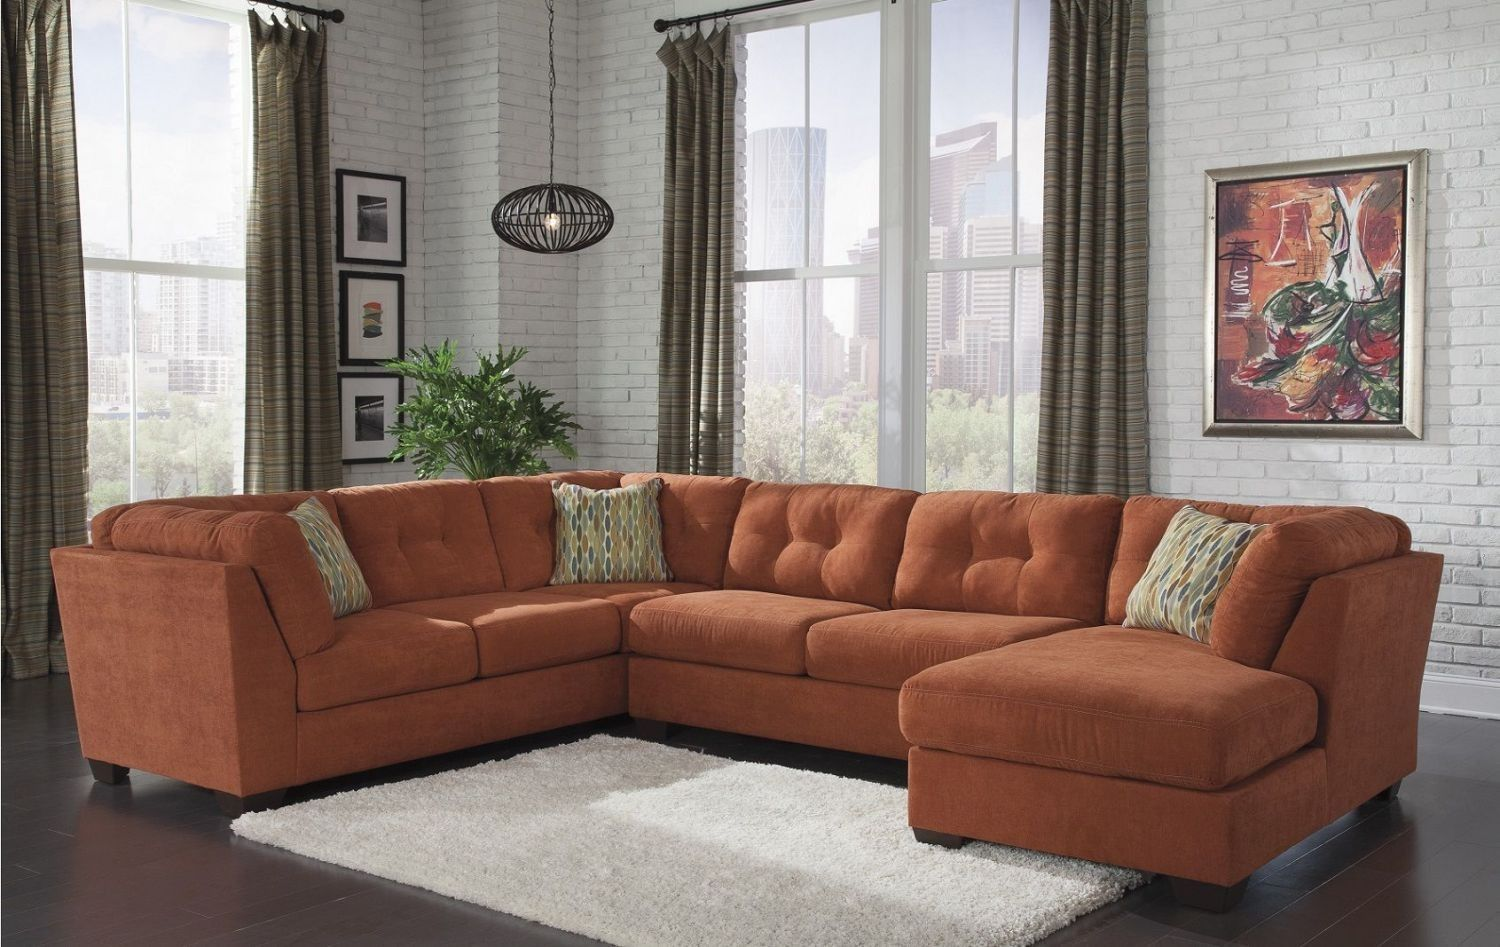 Delta city rust sectional for the home pinterest rust living